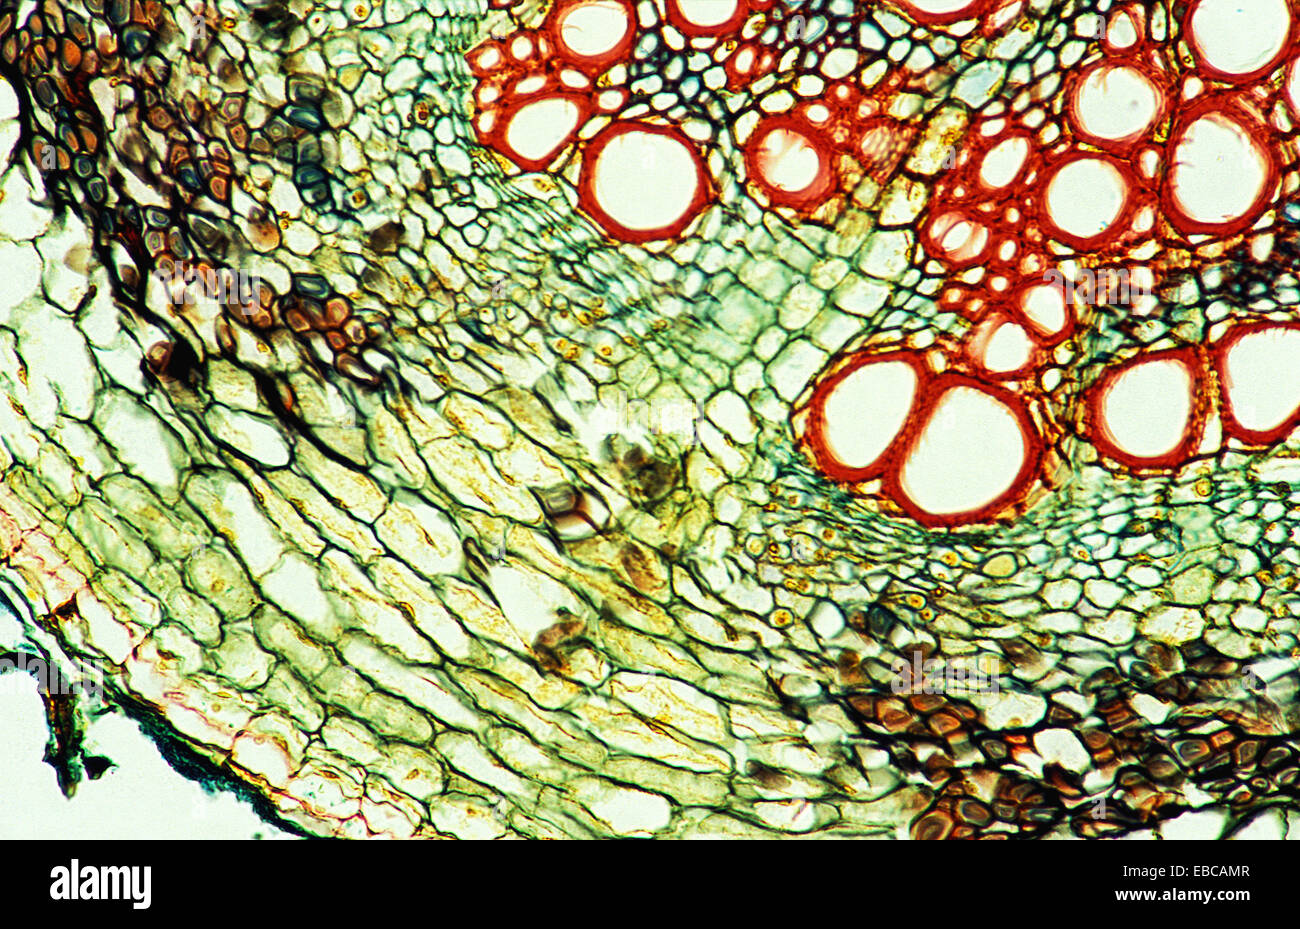 200 anatomy backgrounds biology botany bubble cell close-up color ...